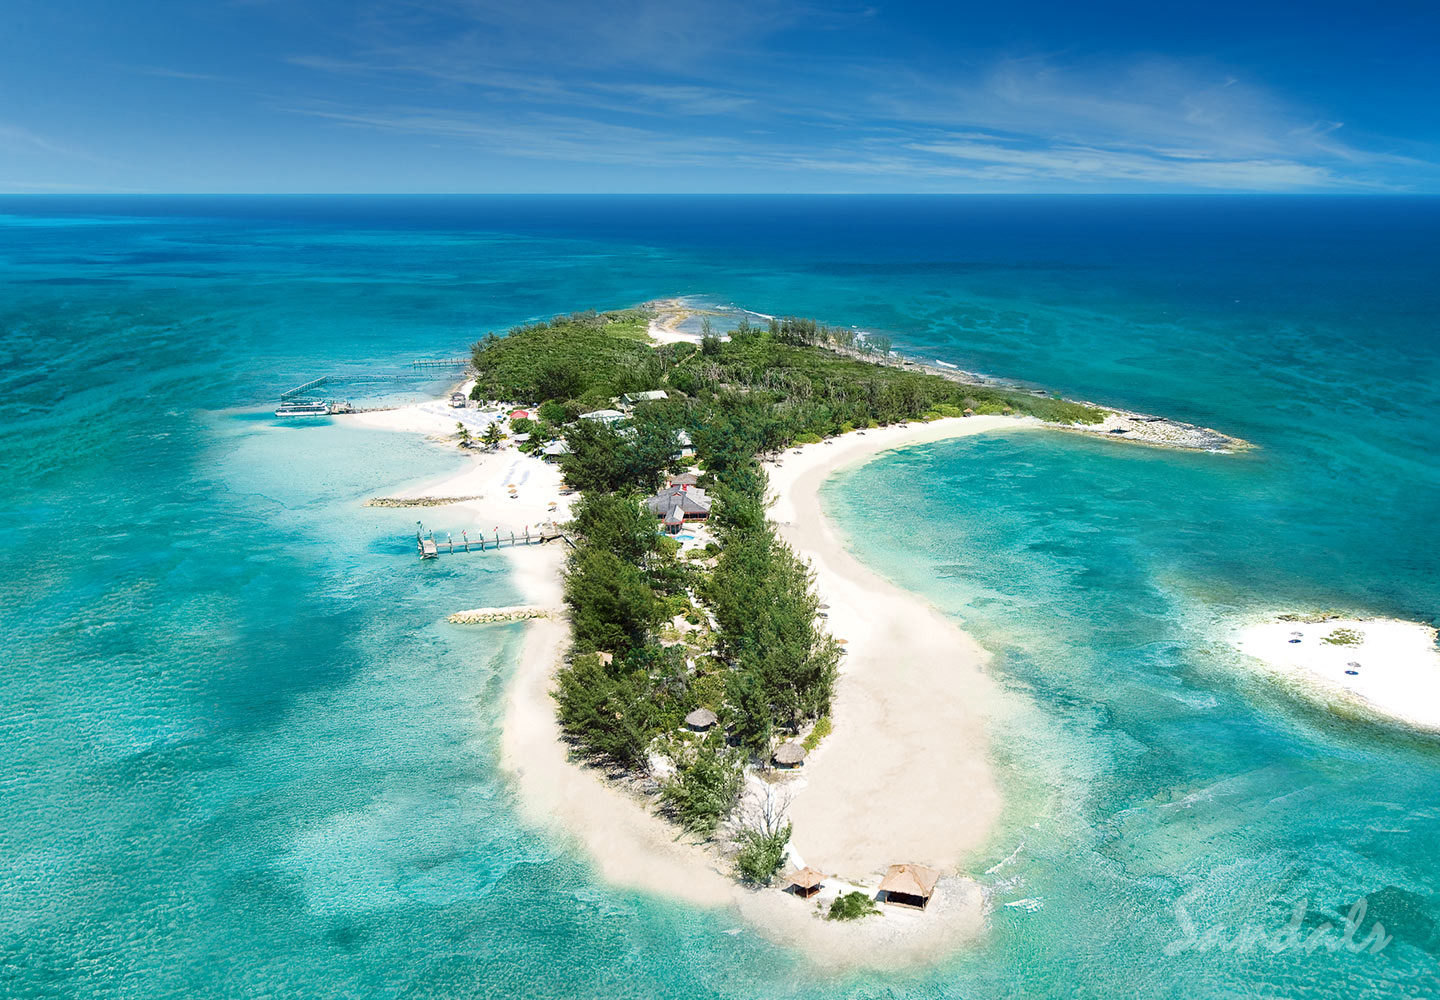 Travel Agency All-Inclusive Resort Sandals Royal Bahamian 009